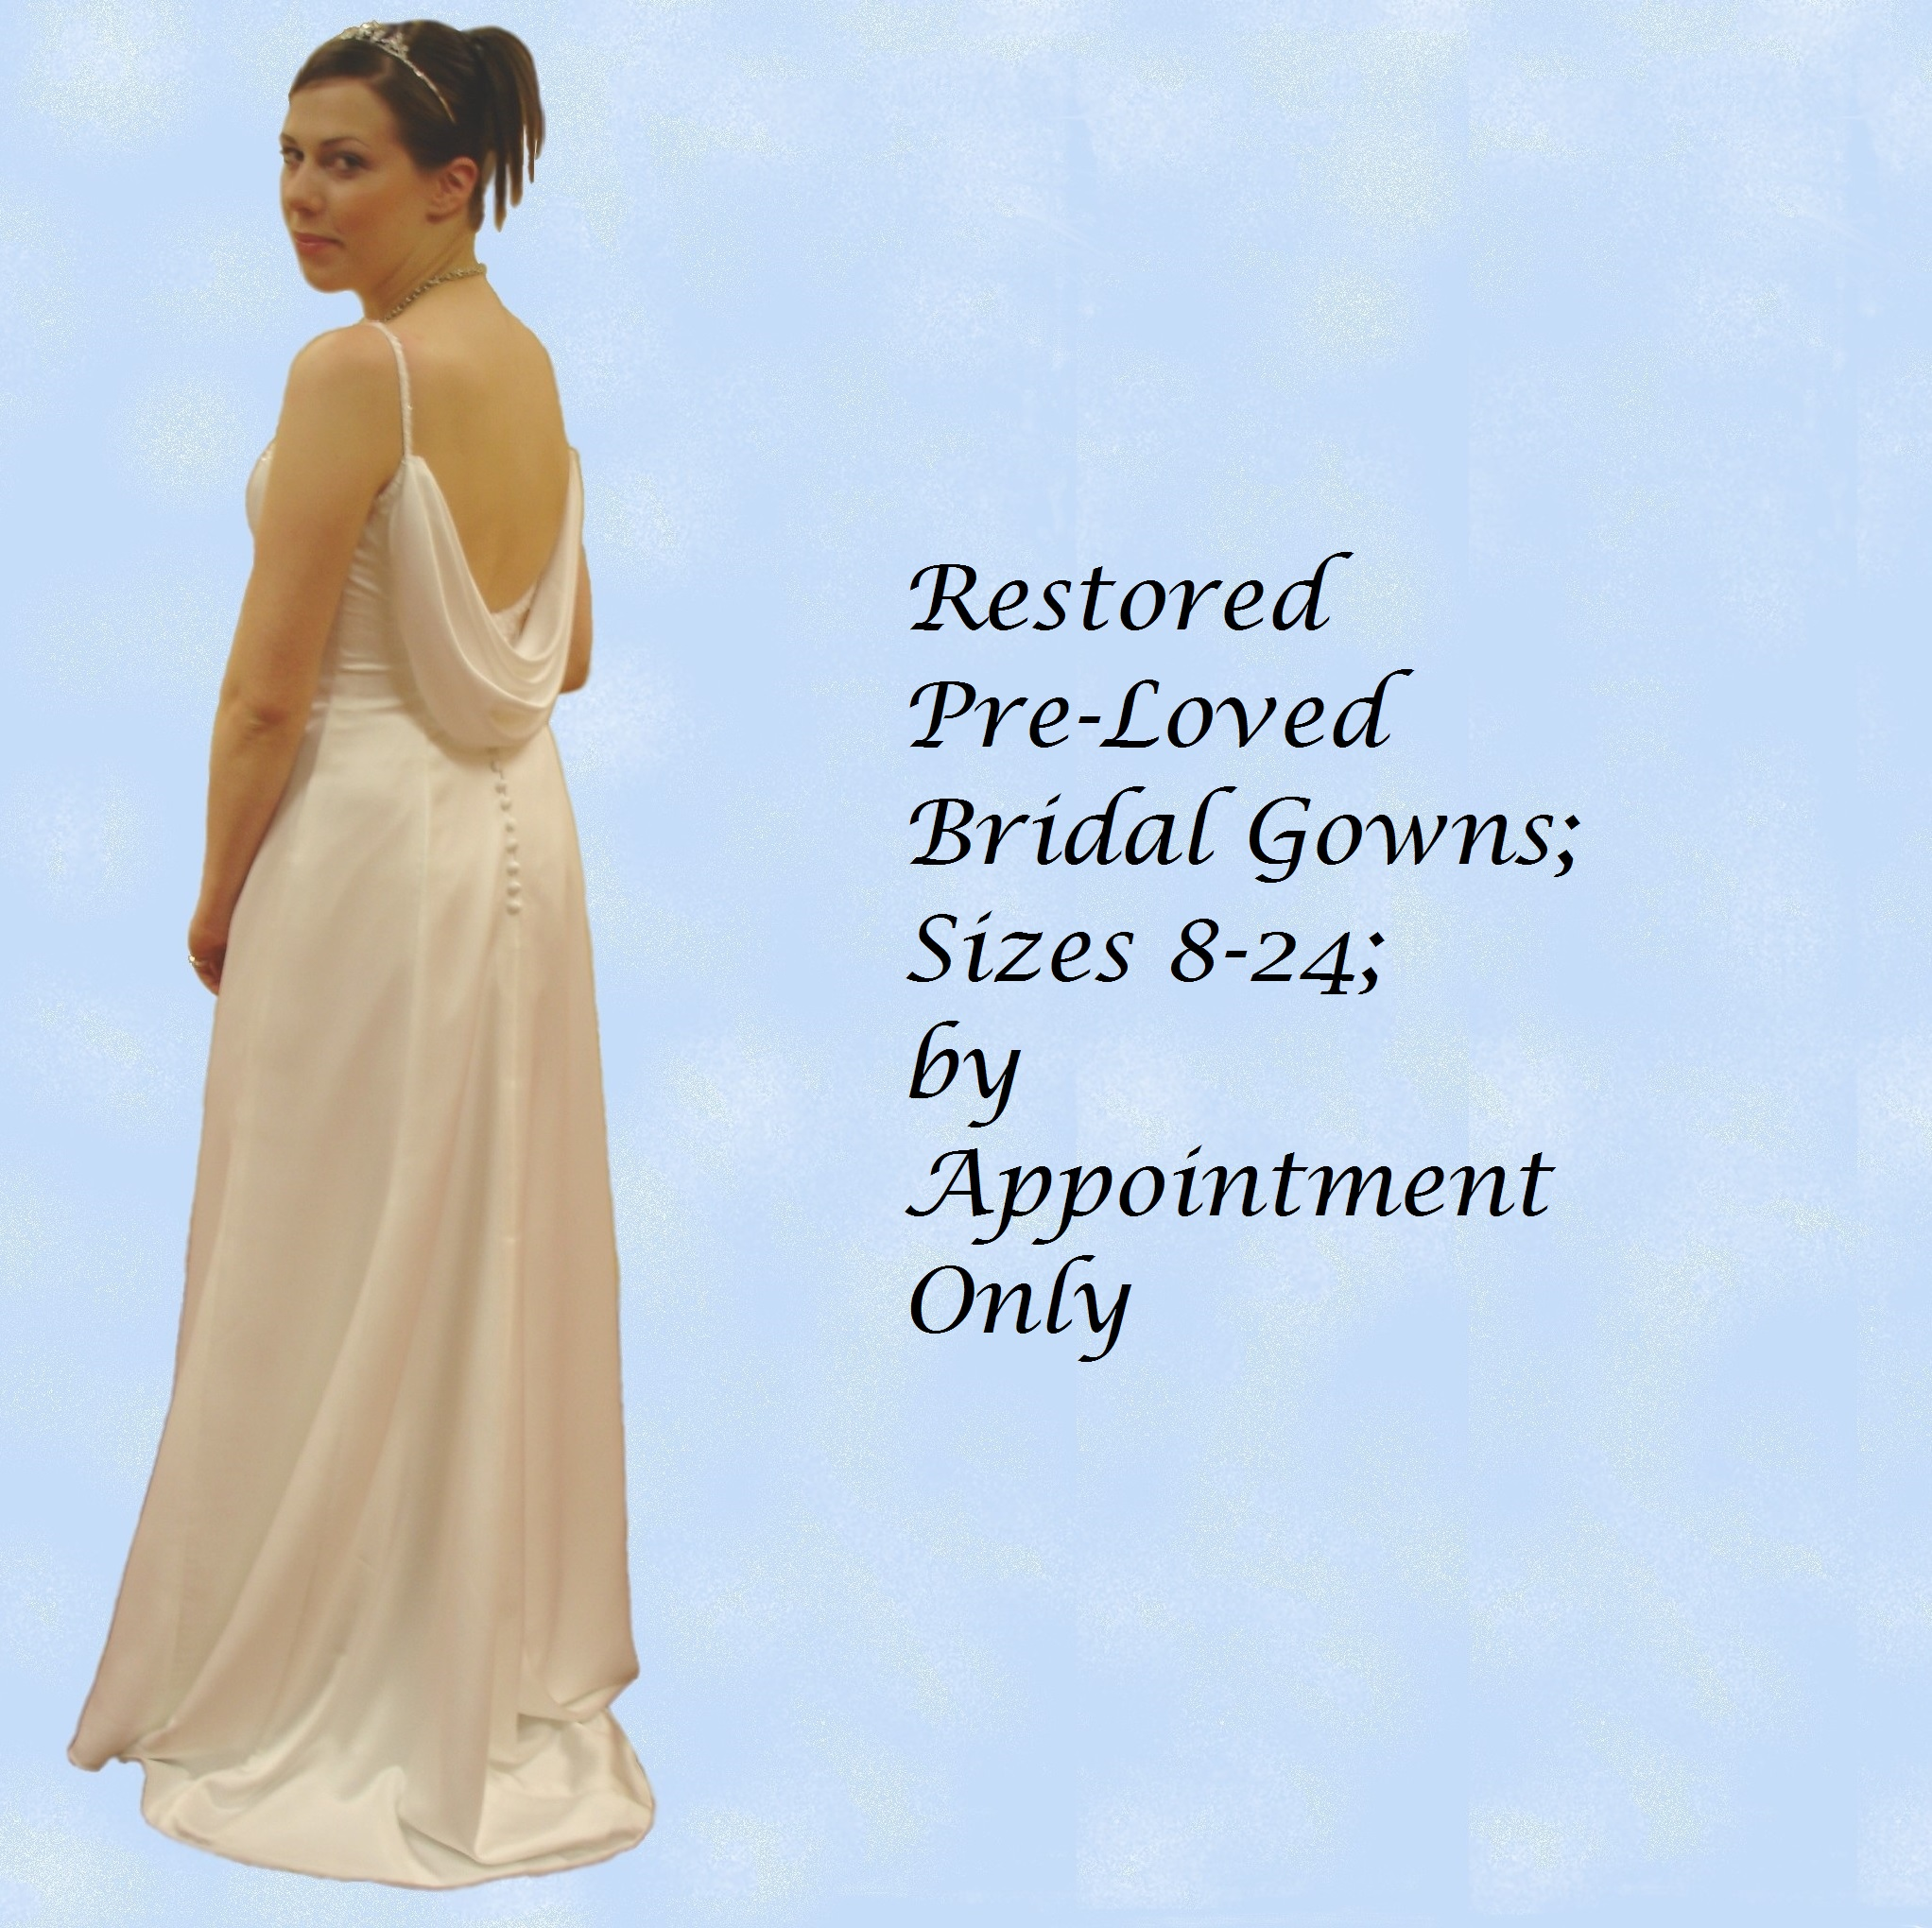 Galateia Gowns